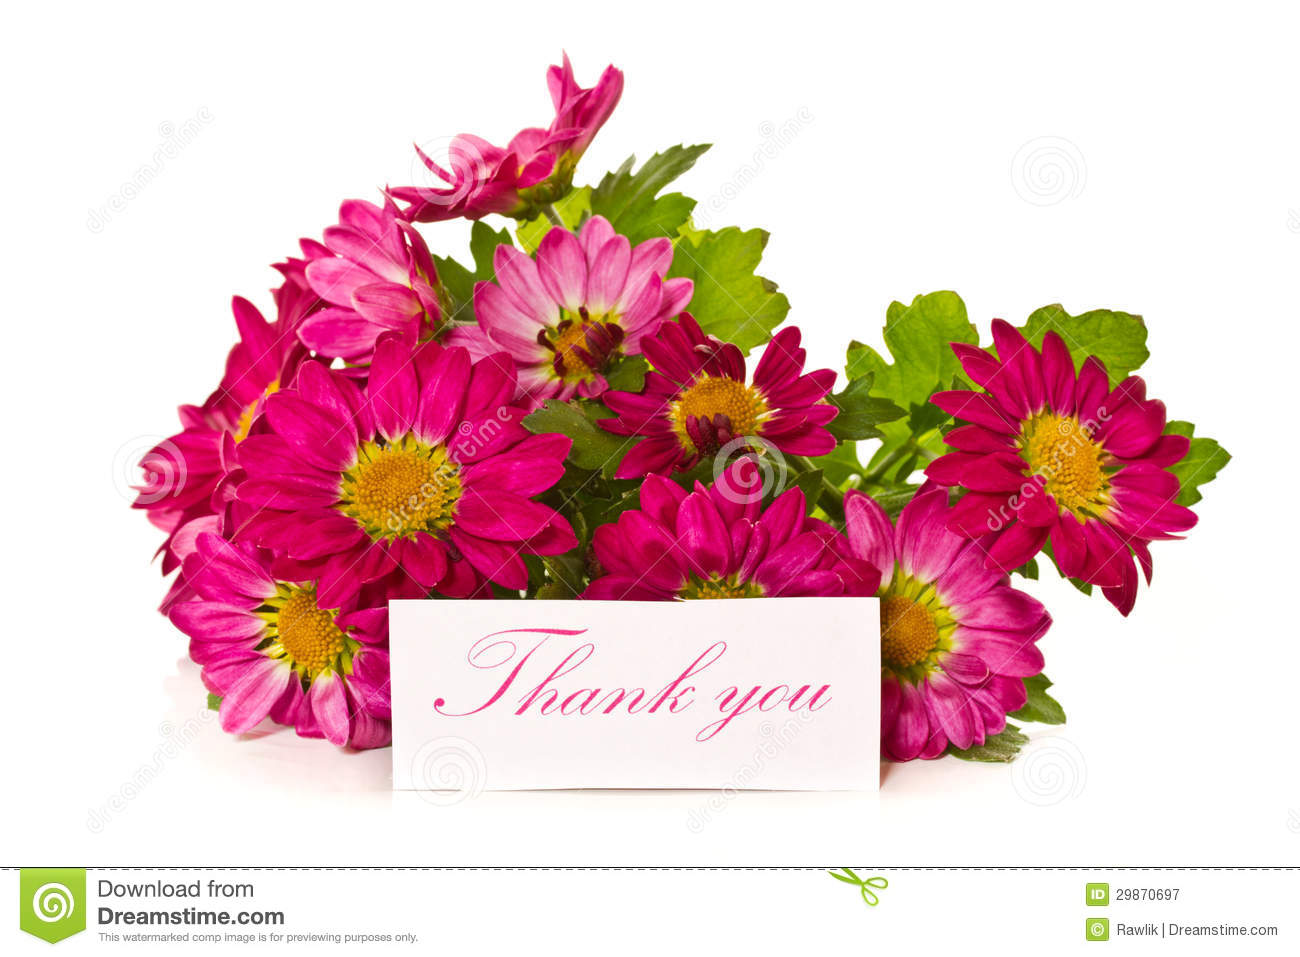 Thanks with flowers stock image. Image of color, beauty - 29870697